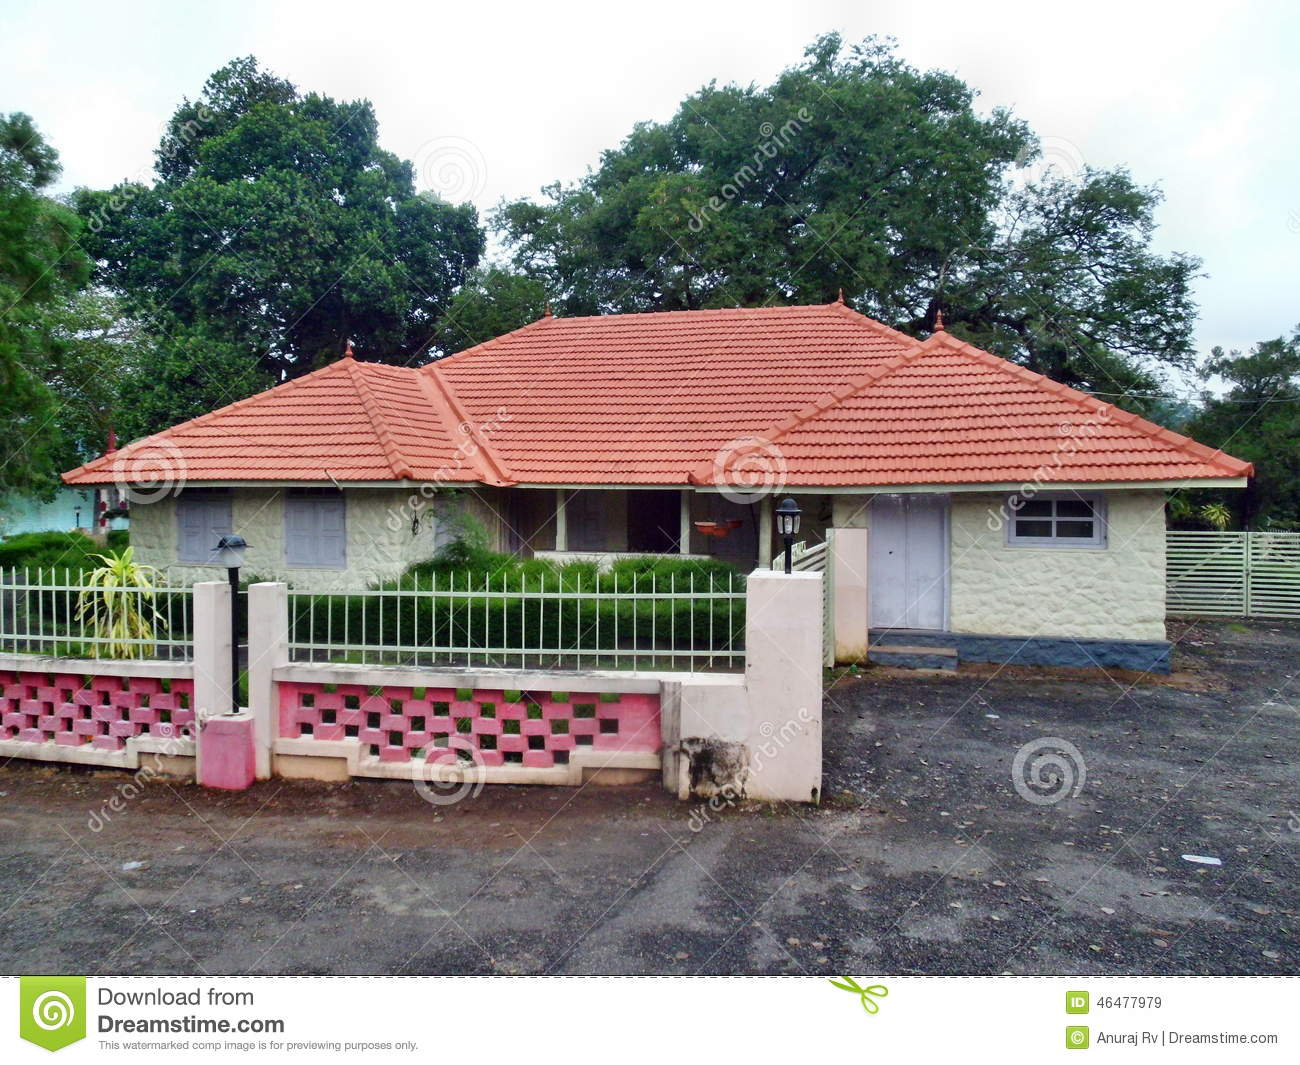 Kerala model house stock image image of building road for Traditional indian house designs